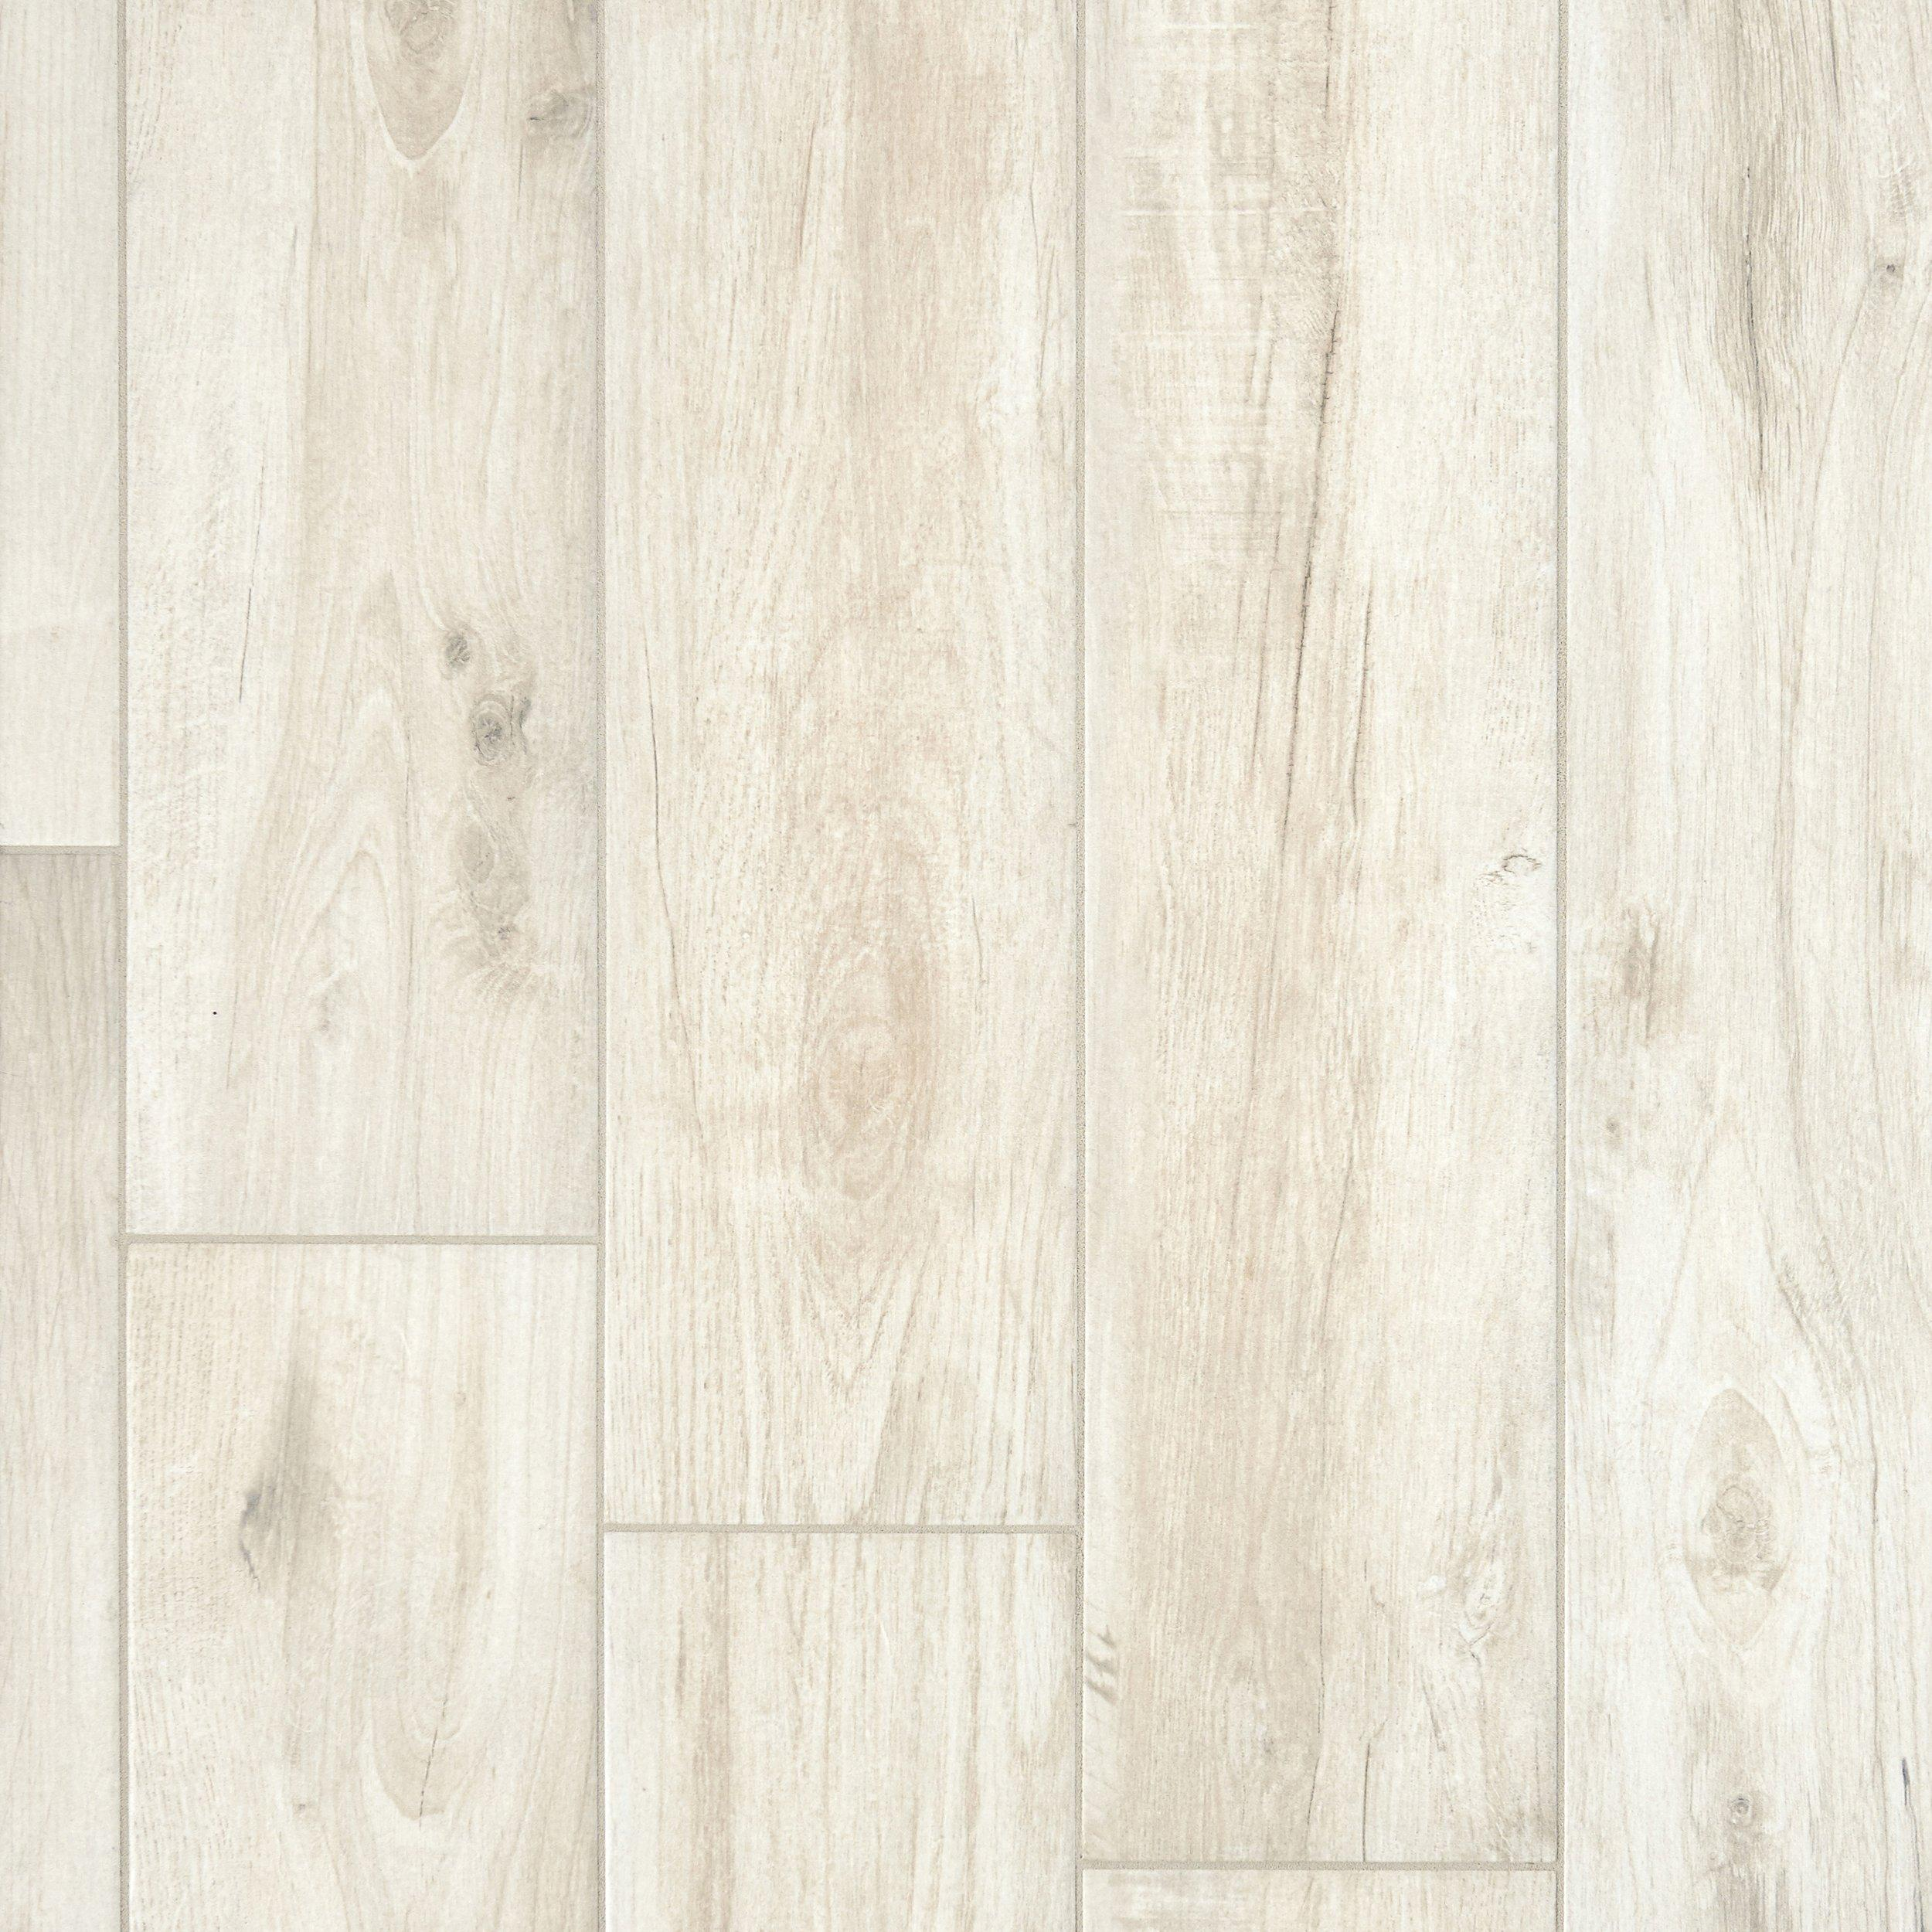 Porcelain Floor Tiles Wood Look Tile Floor And Decor